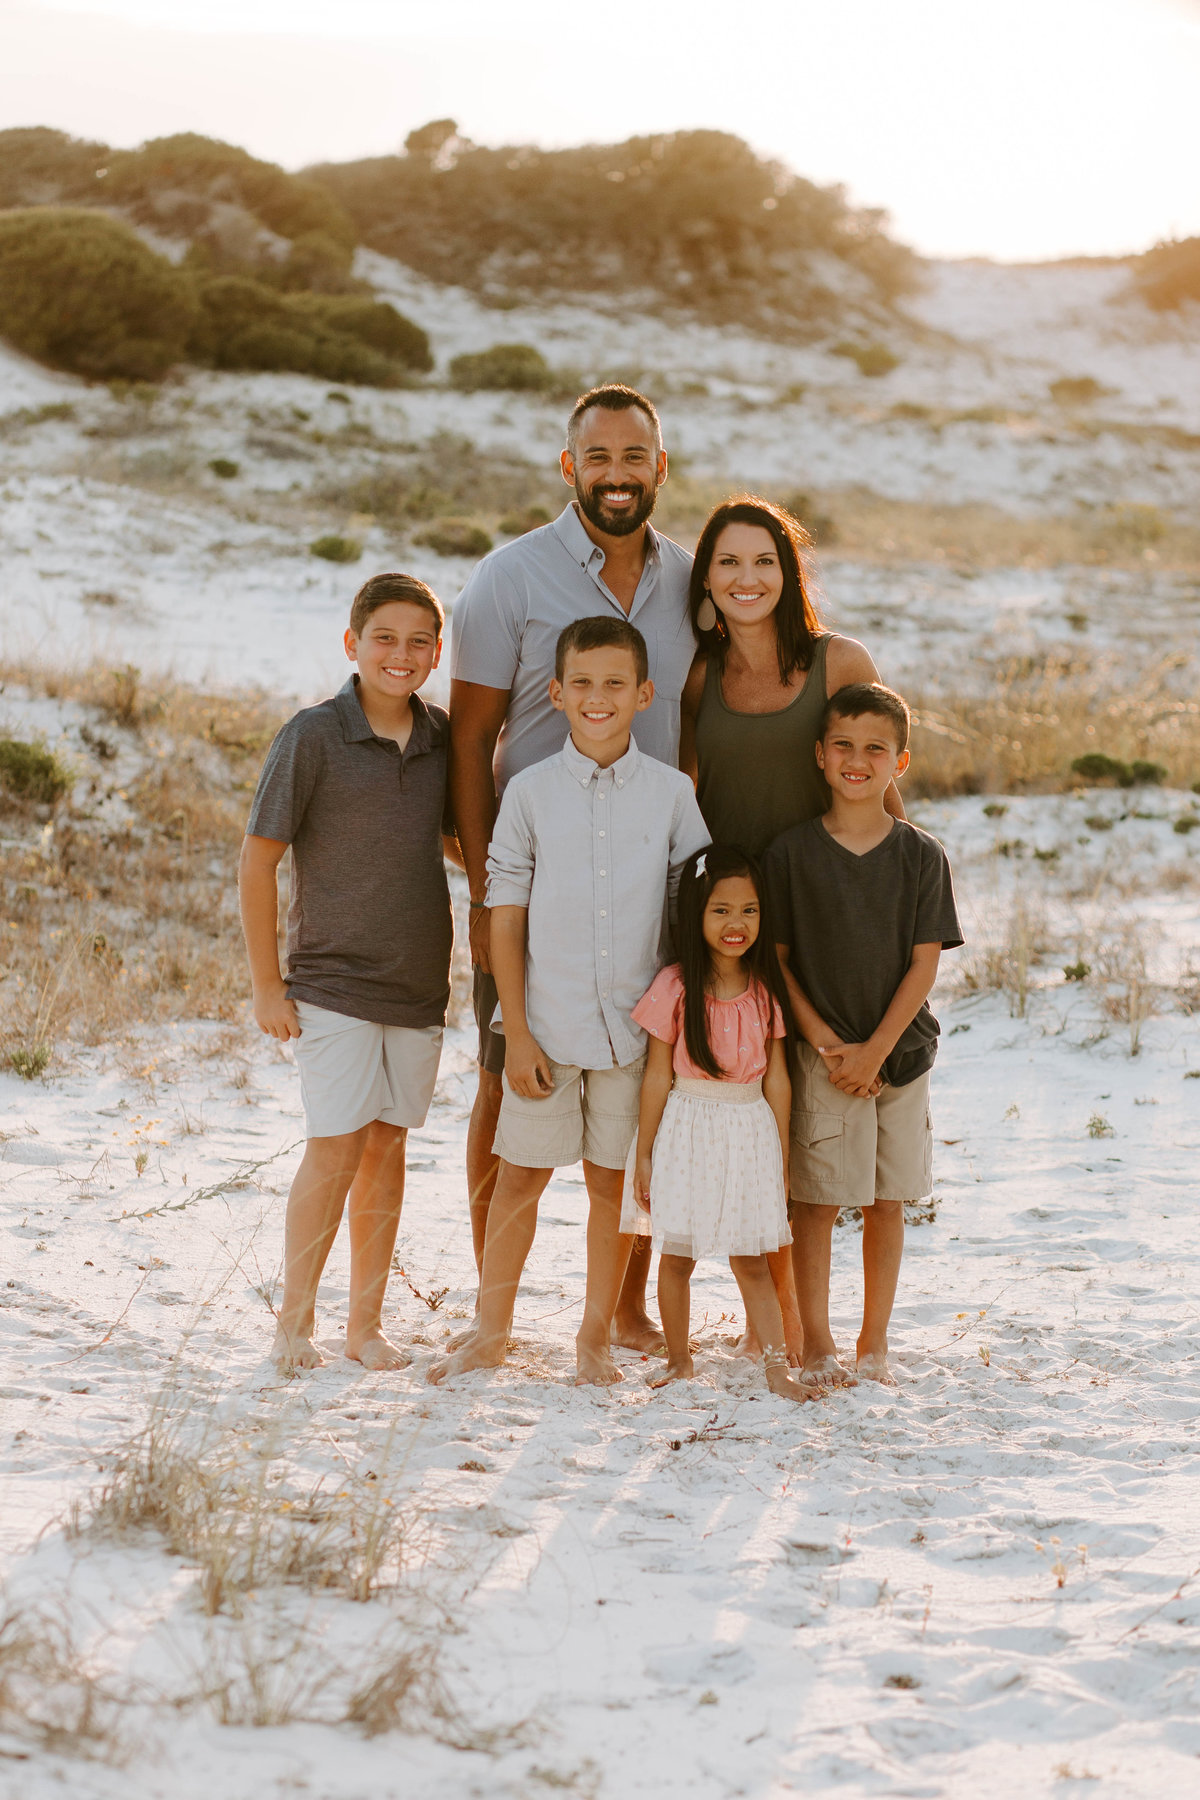 Family at beach photo session in Seaside Florida